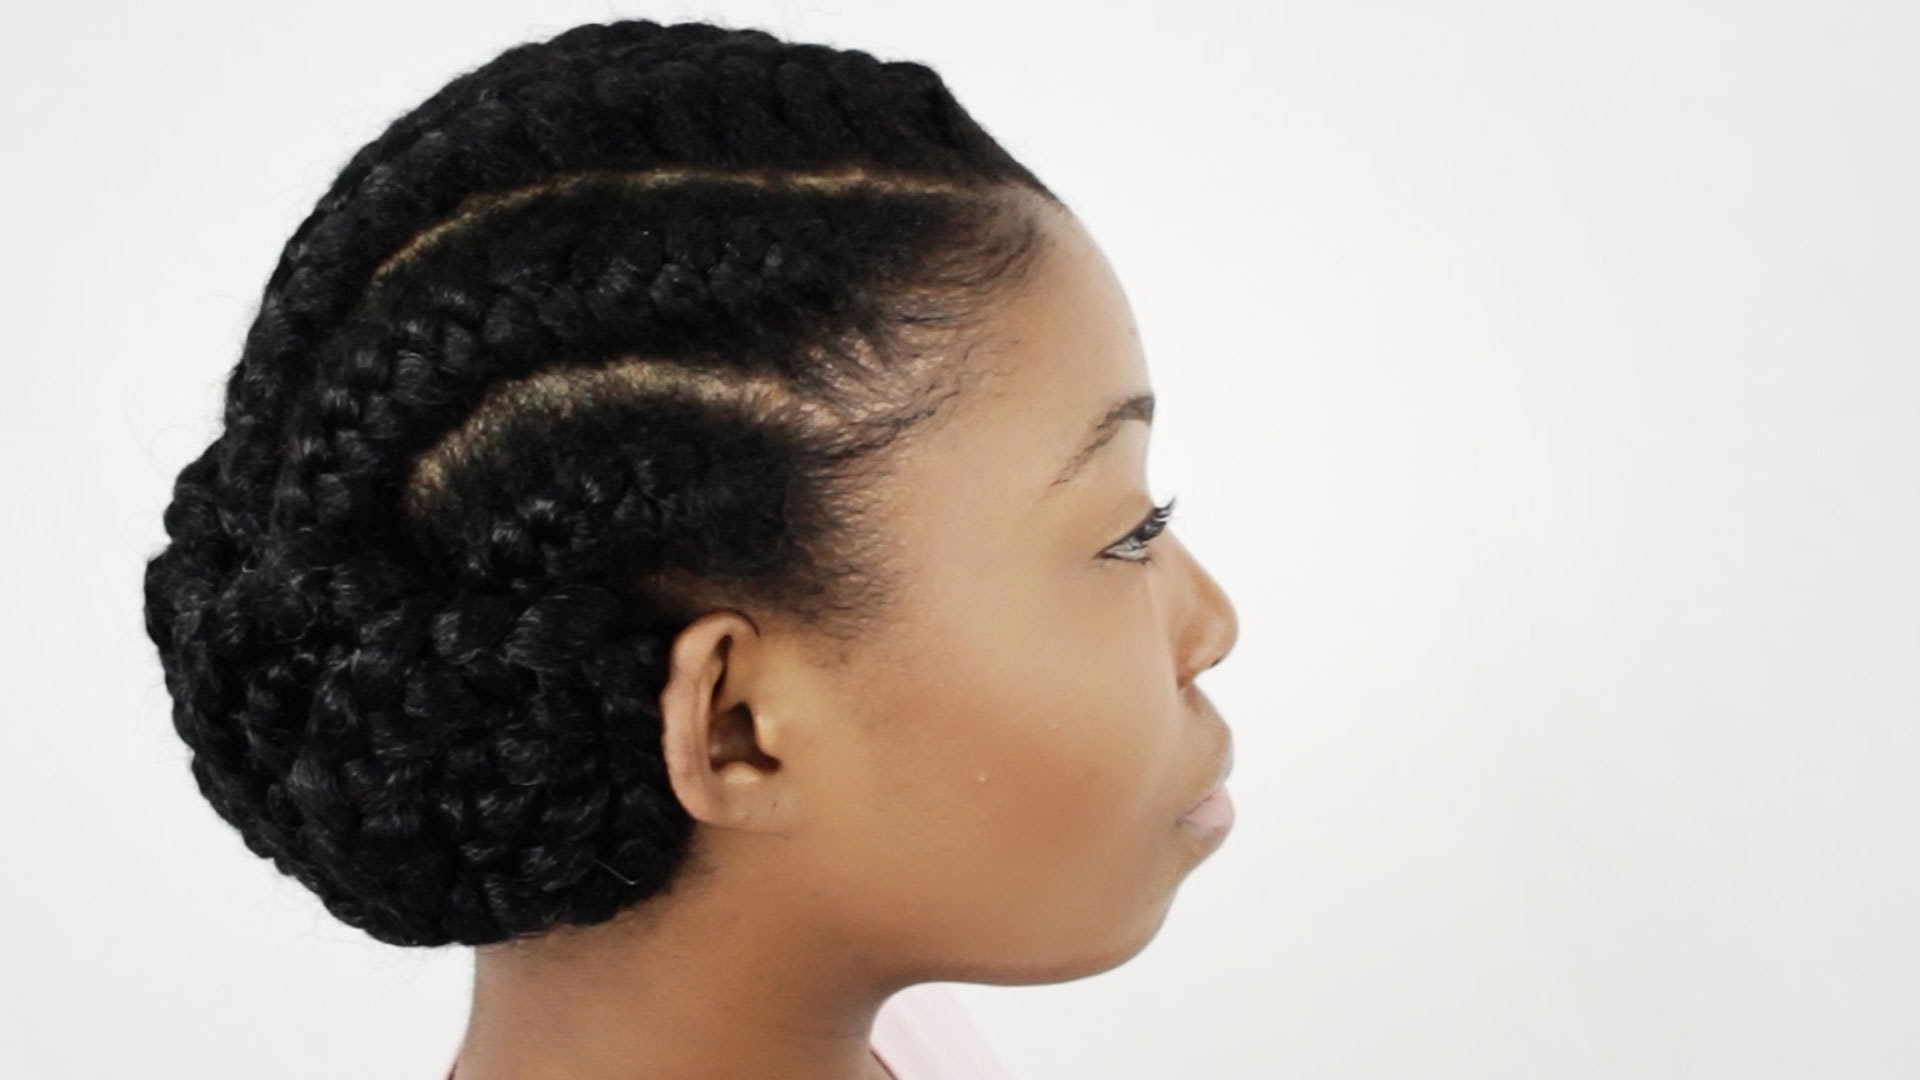 Goddess Braids Updo Hairstyles 1000+ Images About Braids On For Goddess Updo Hairstyles (View 13 of 15)